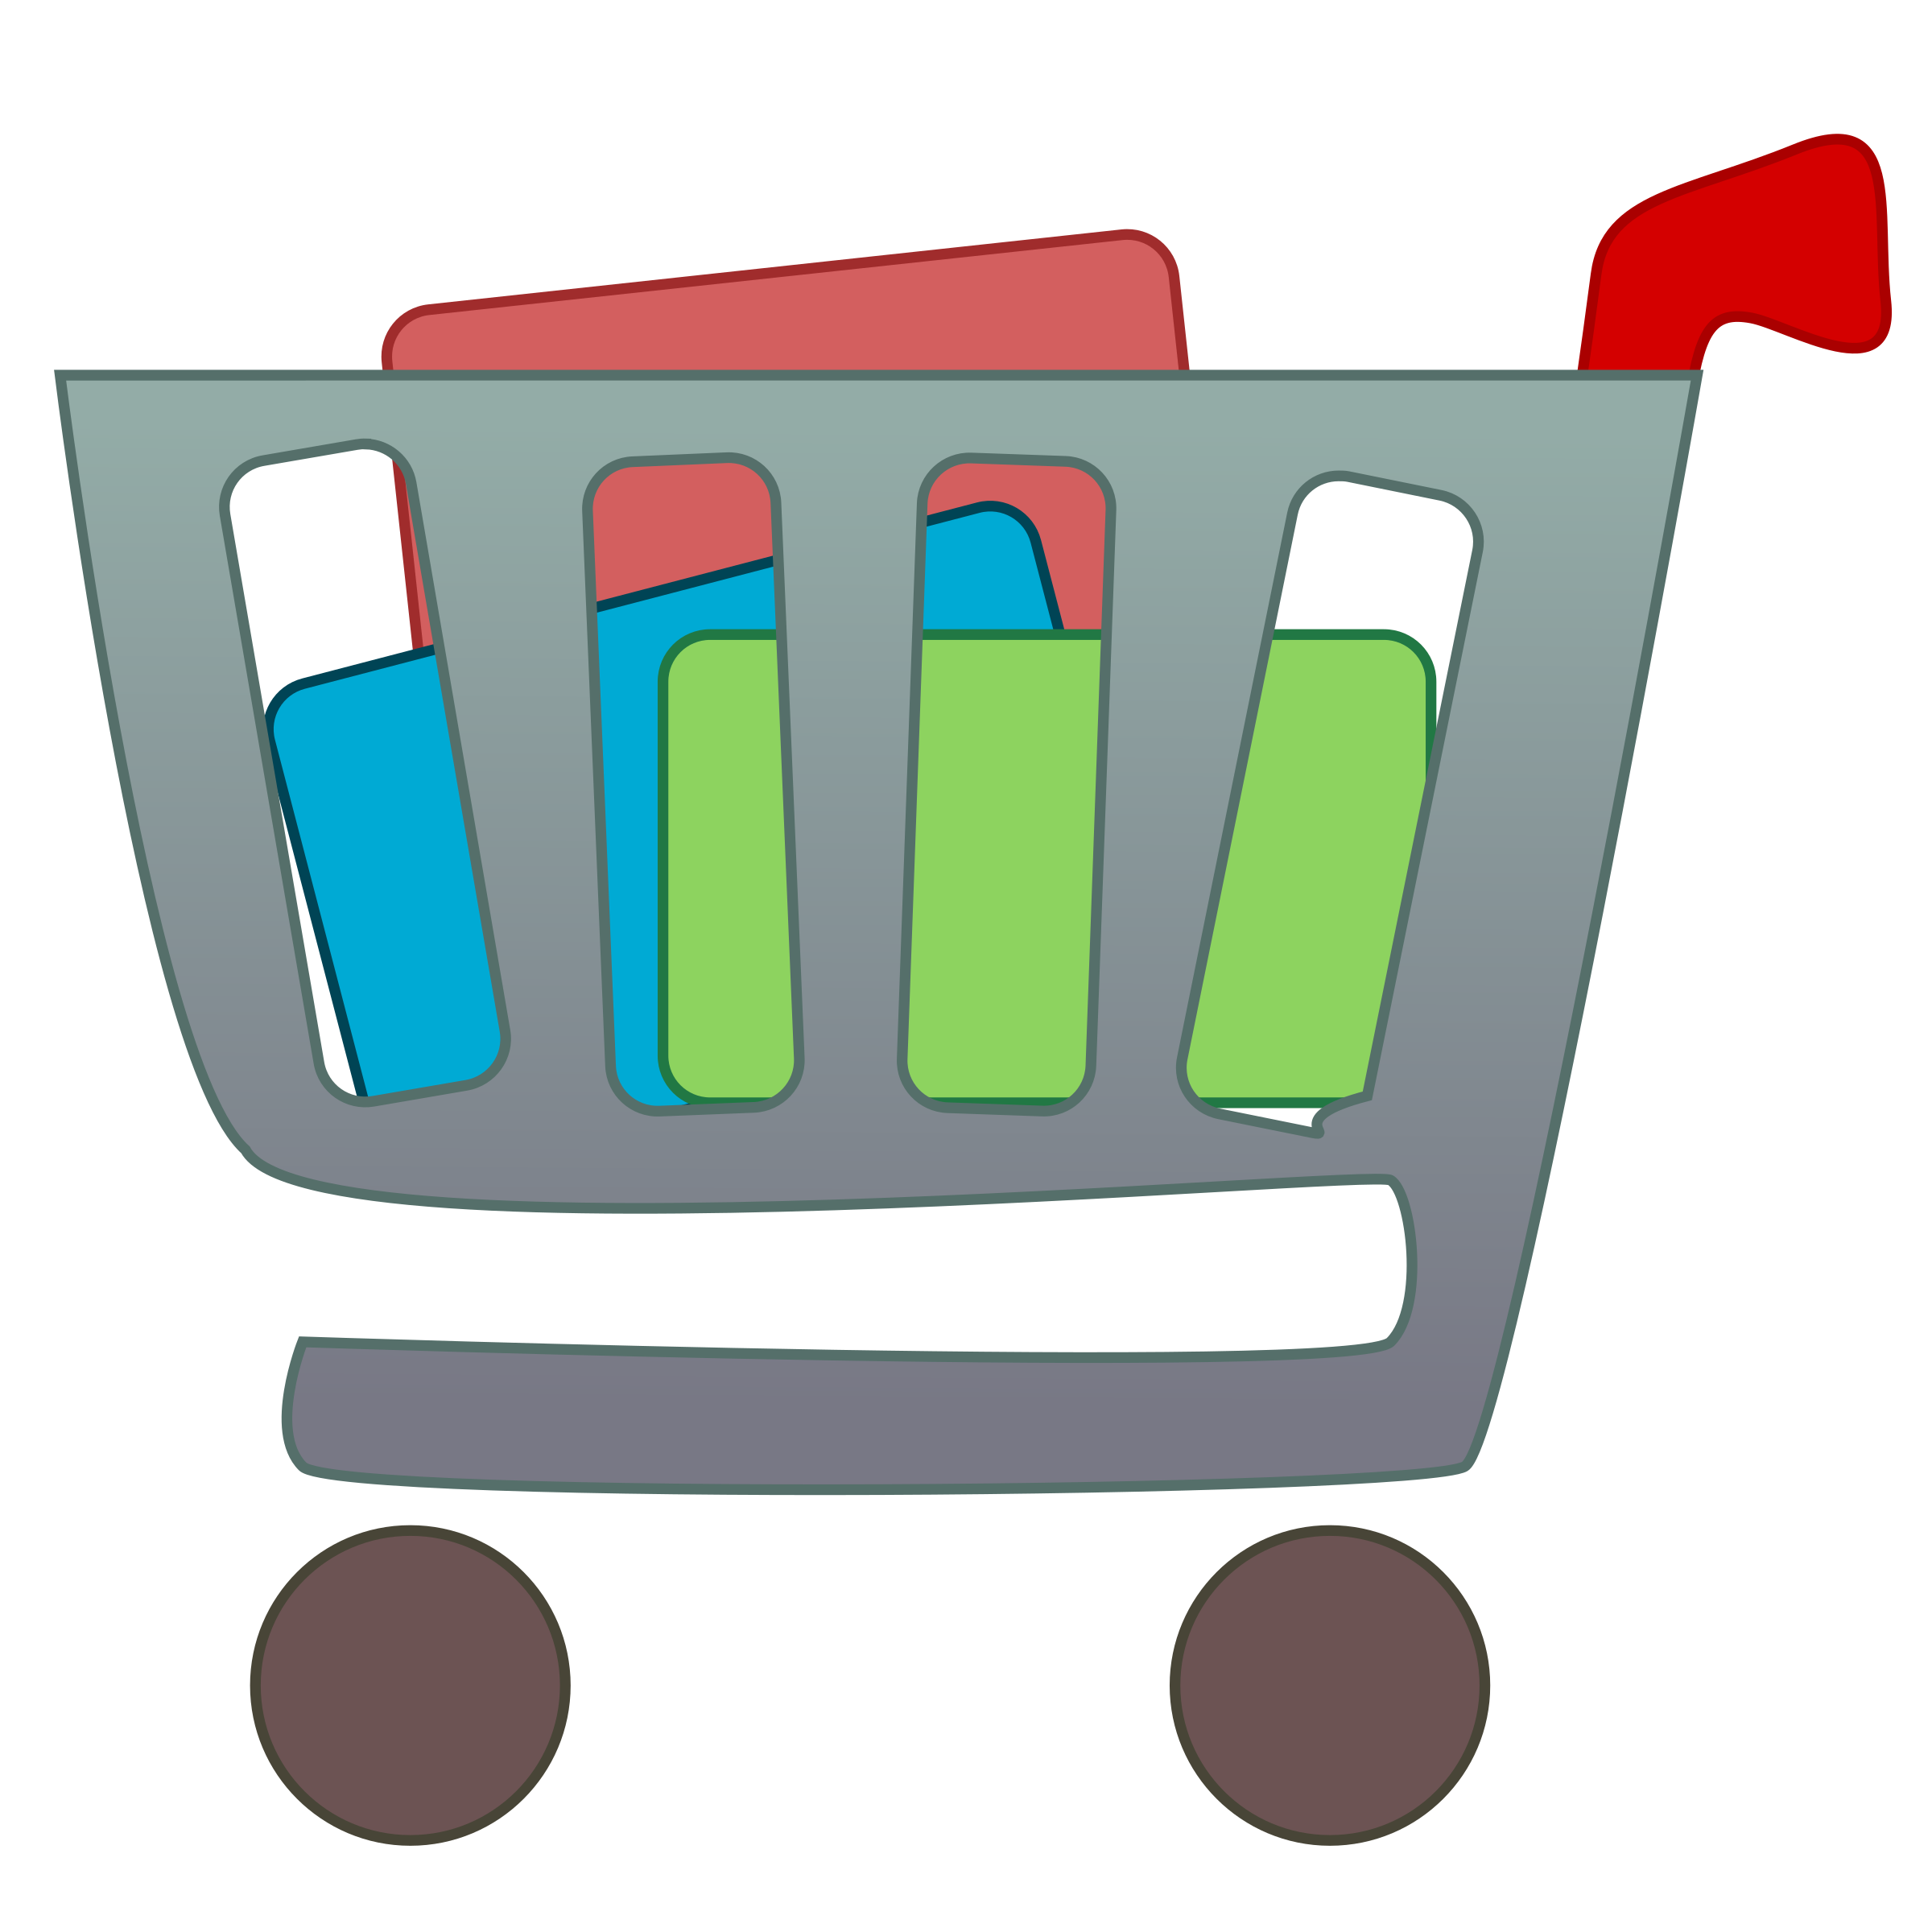 Computers clipart item. Shopping cart with items